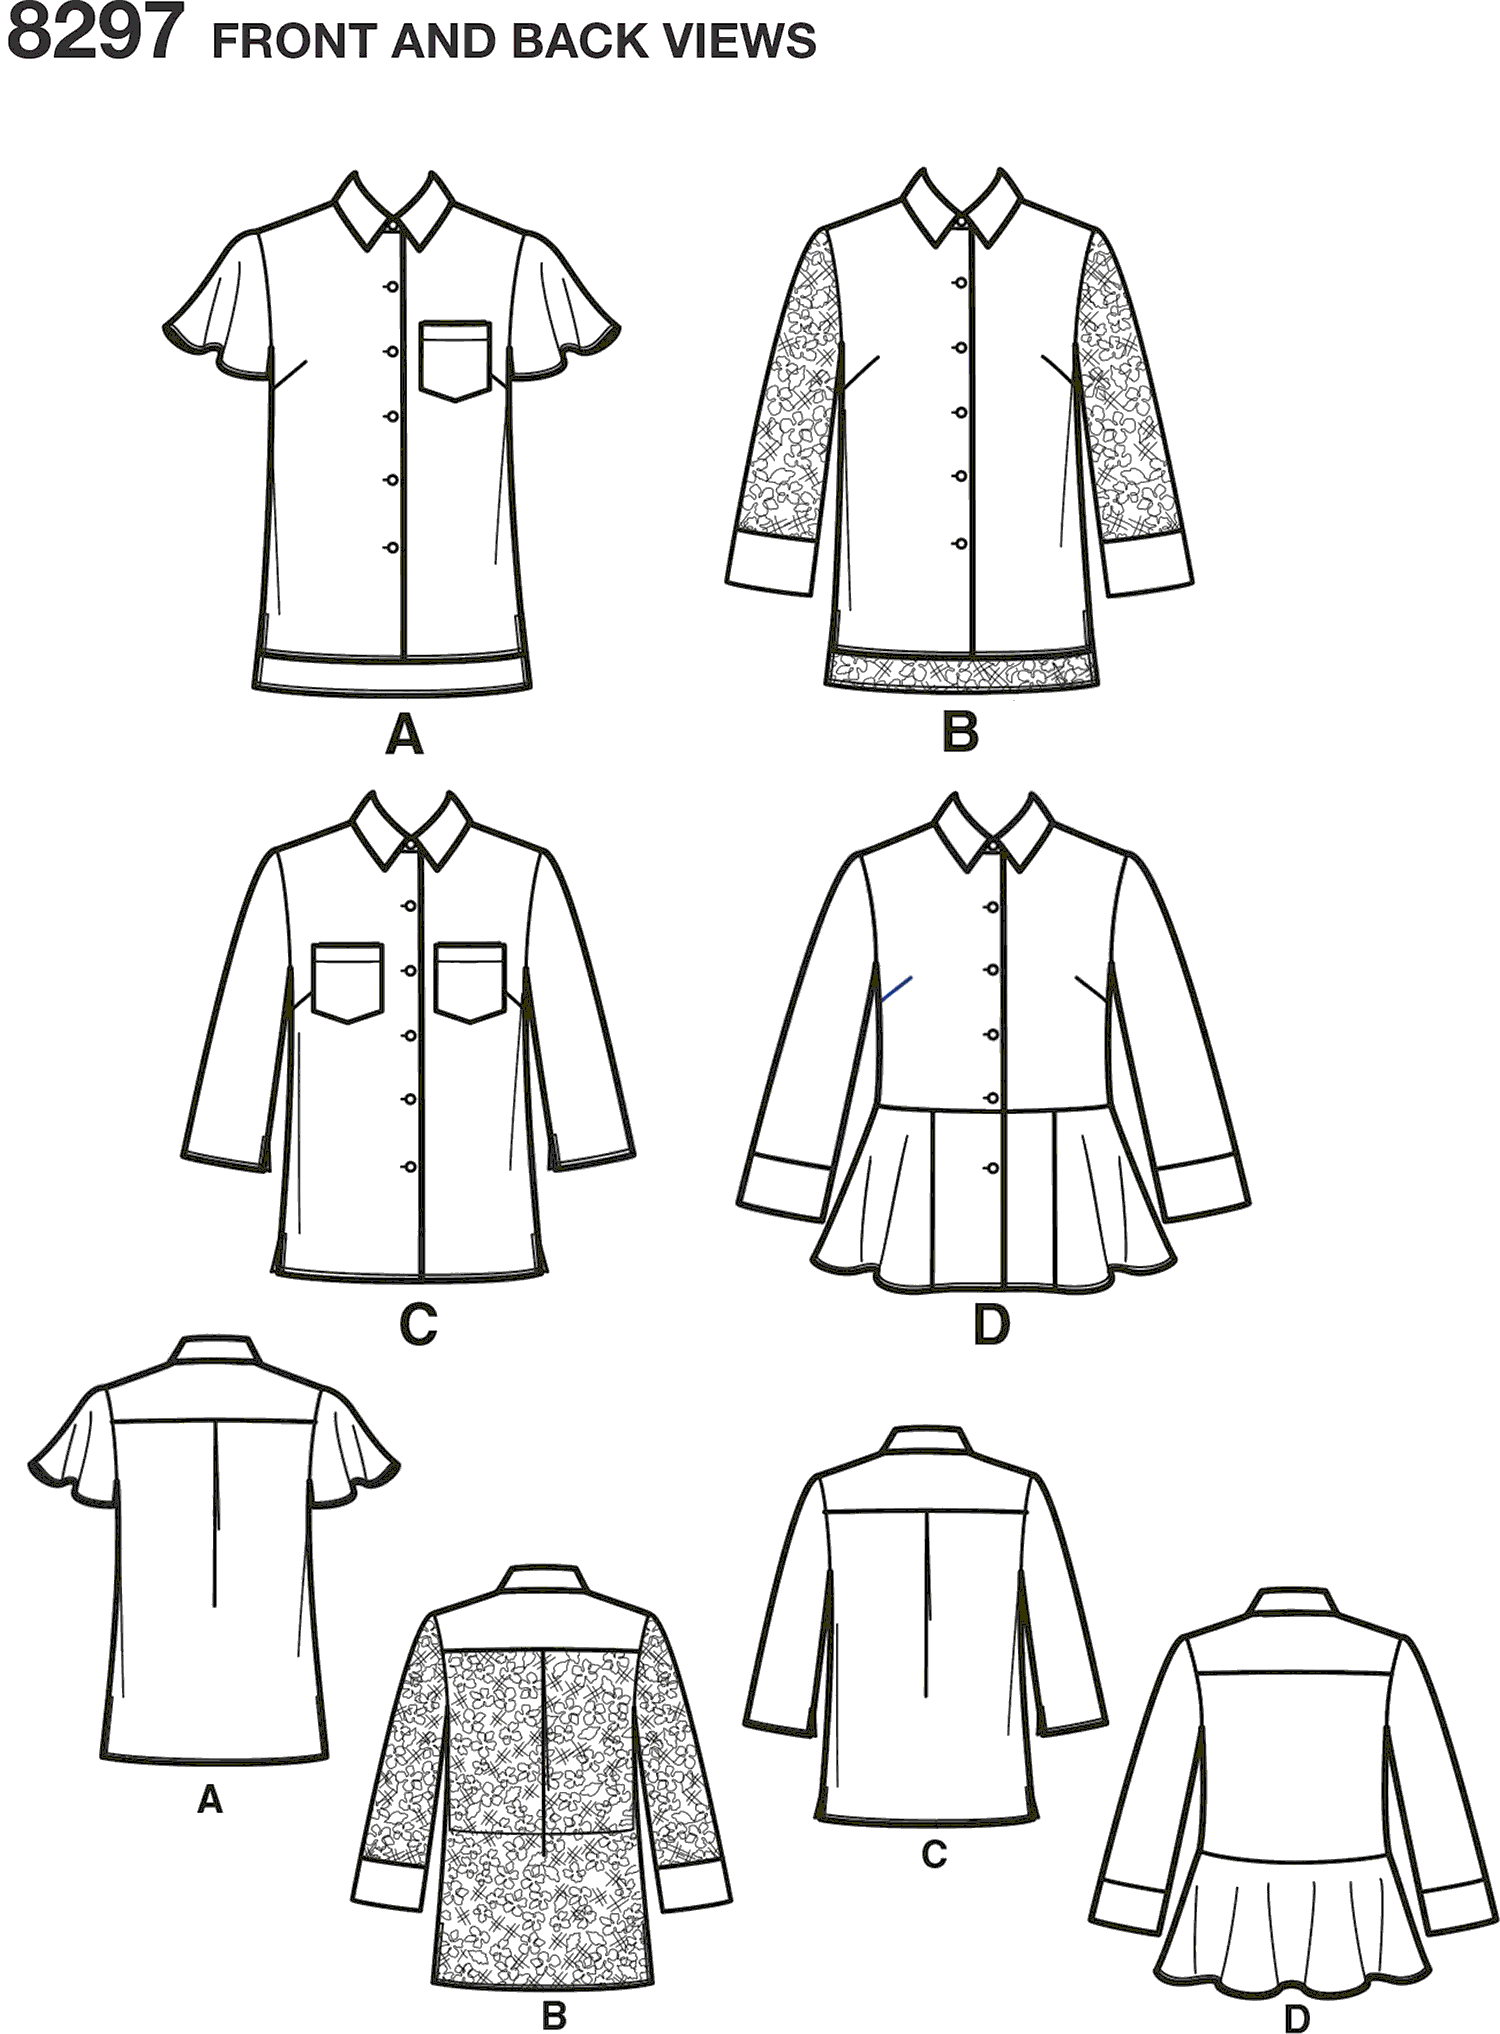 Simplicity Pattern 8297 Womens Shirts Line Art From Patternsandplains.com